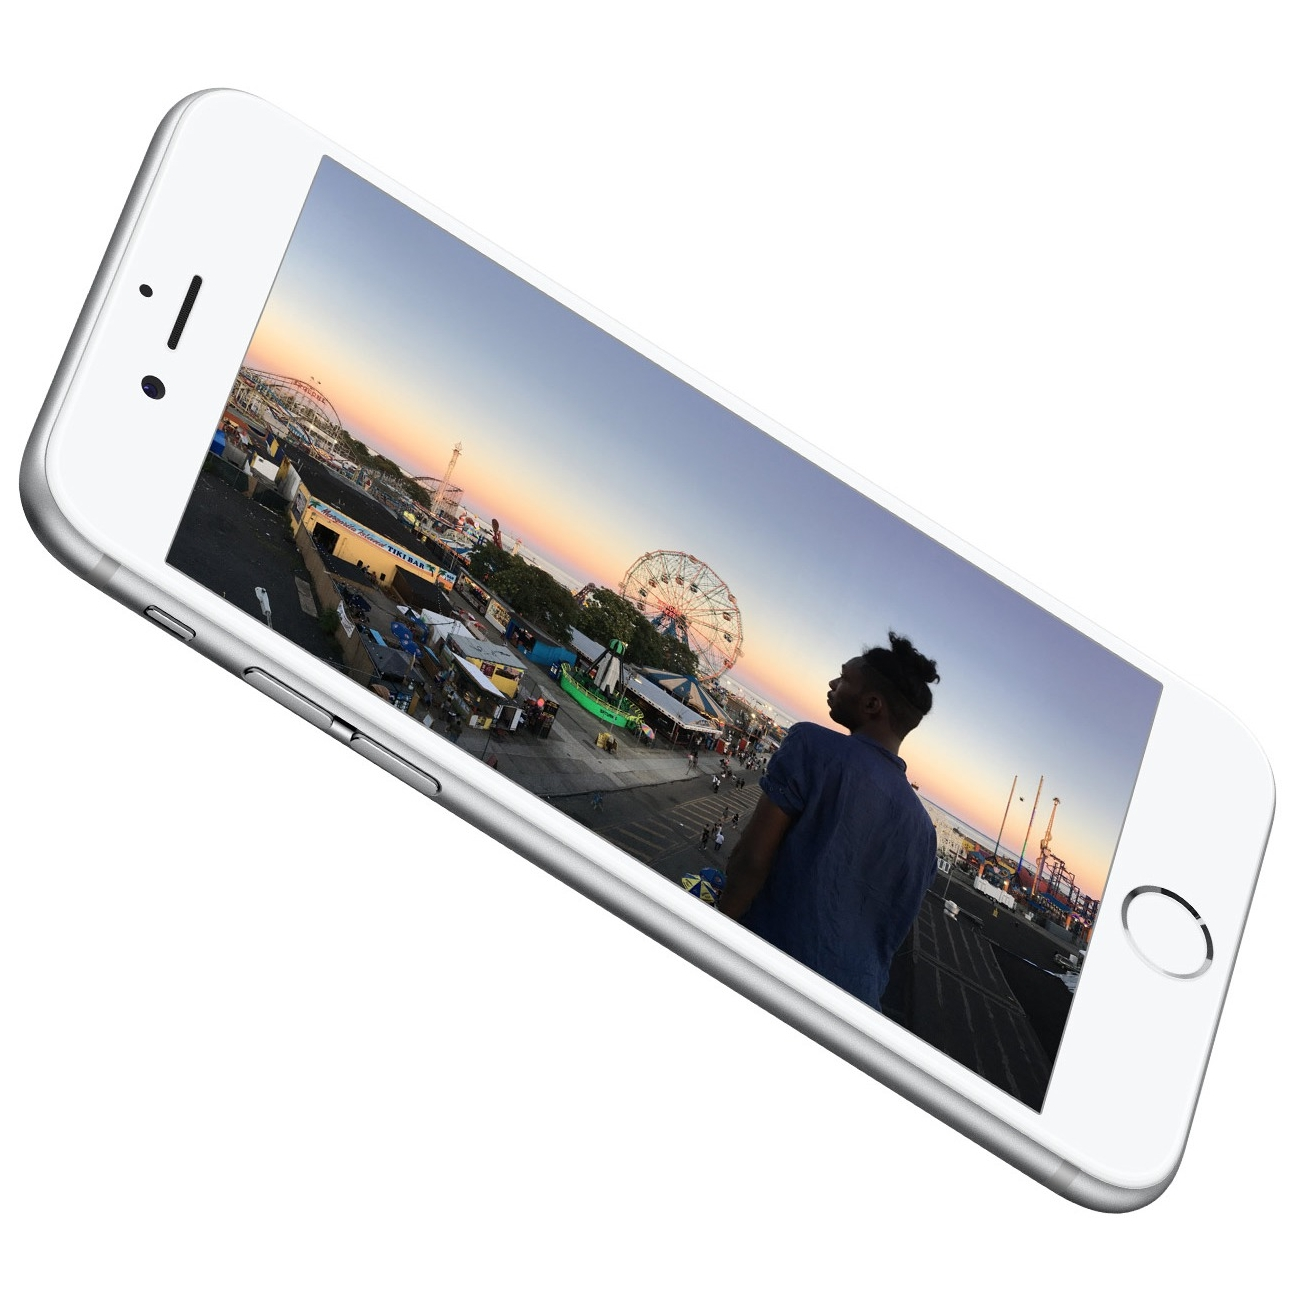 Telecommunication Phones Mobile Apple Iphone 6s Plus 32gb 32 Gb Smartphone 4g 14 Cm 55 Lcd 1920 X 1080 Full Hd Touchscreen A9 Dual Core 2 Ghz Ram 12 Megapixel Rear 5